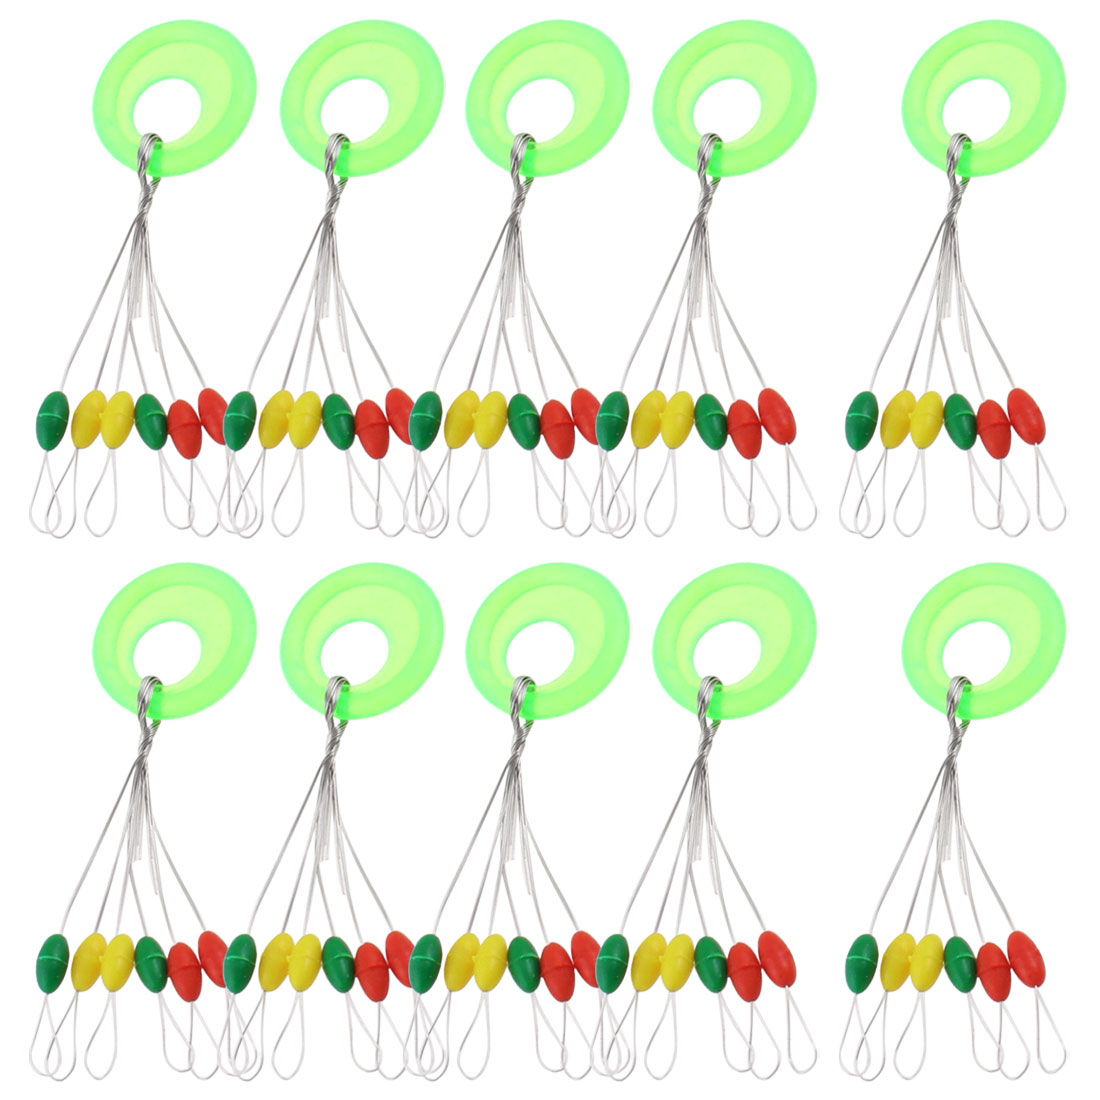 10 Pieces Fishing Tackle Oval Shaped Beads 6 in 1 Floater Bobber Stopper